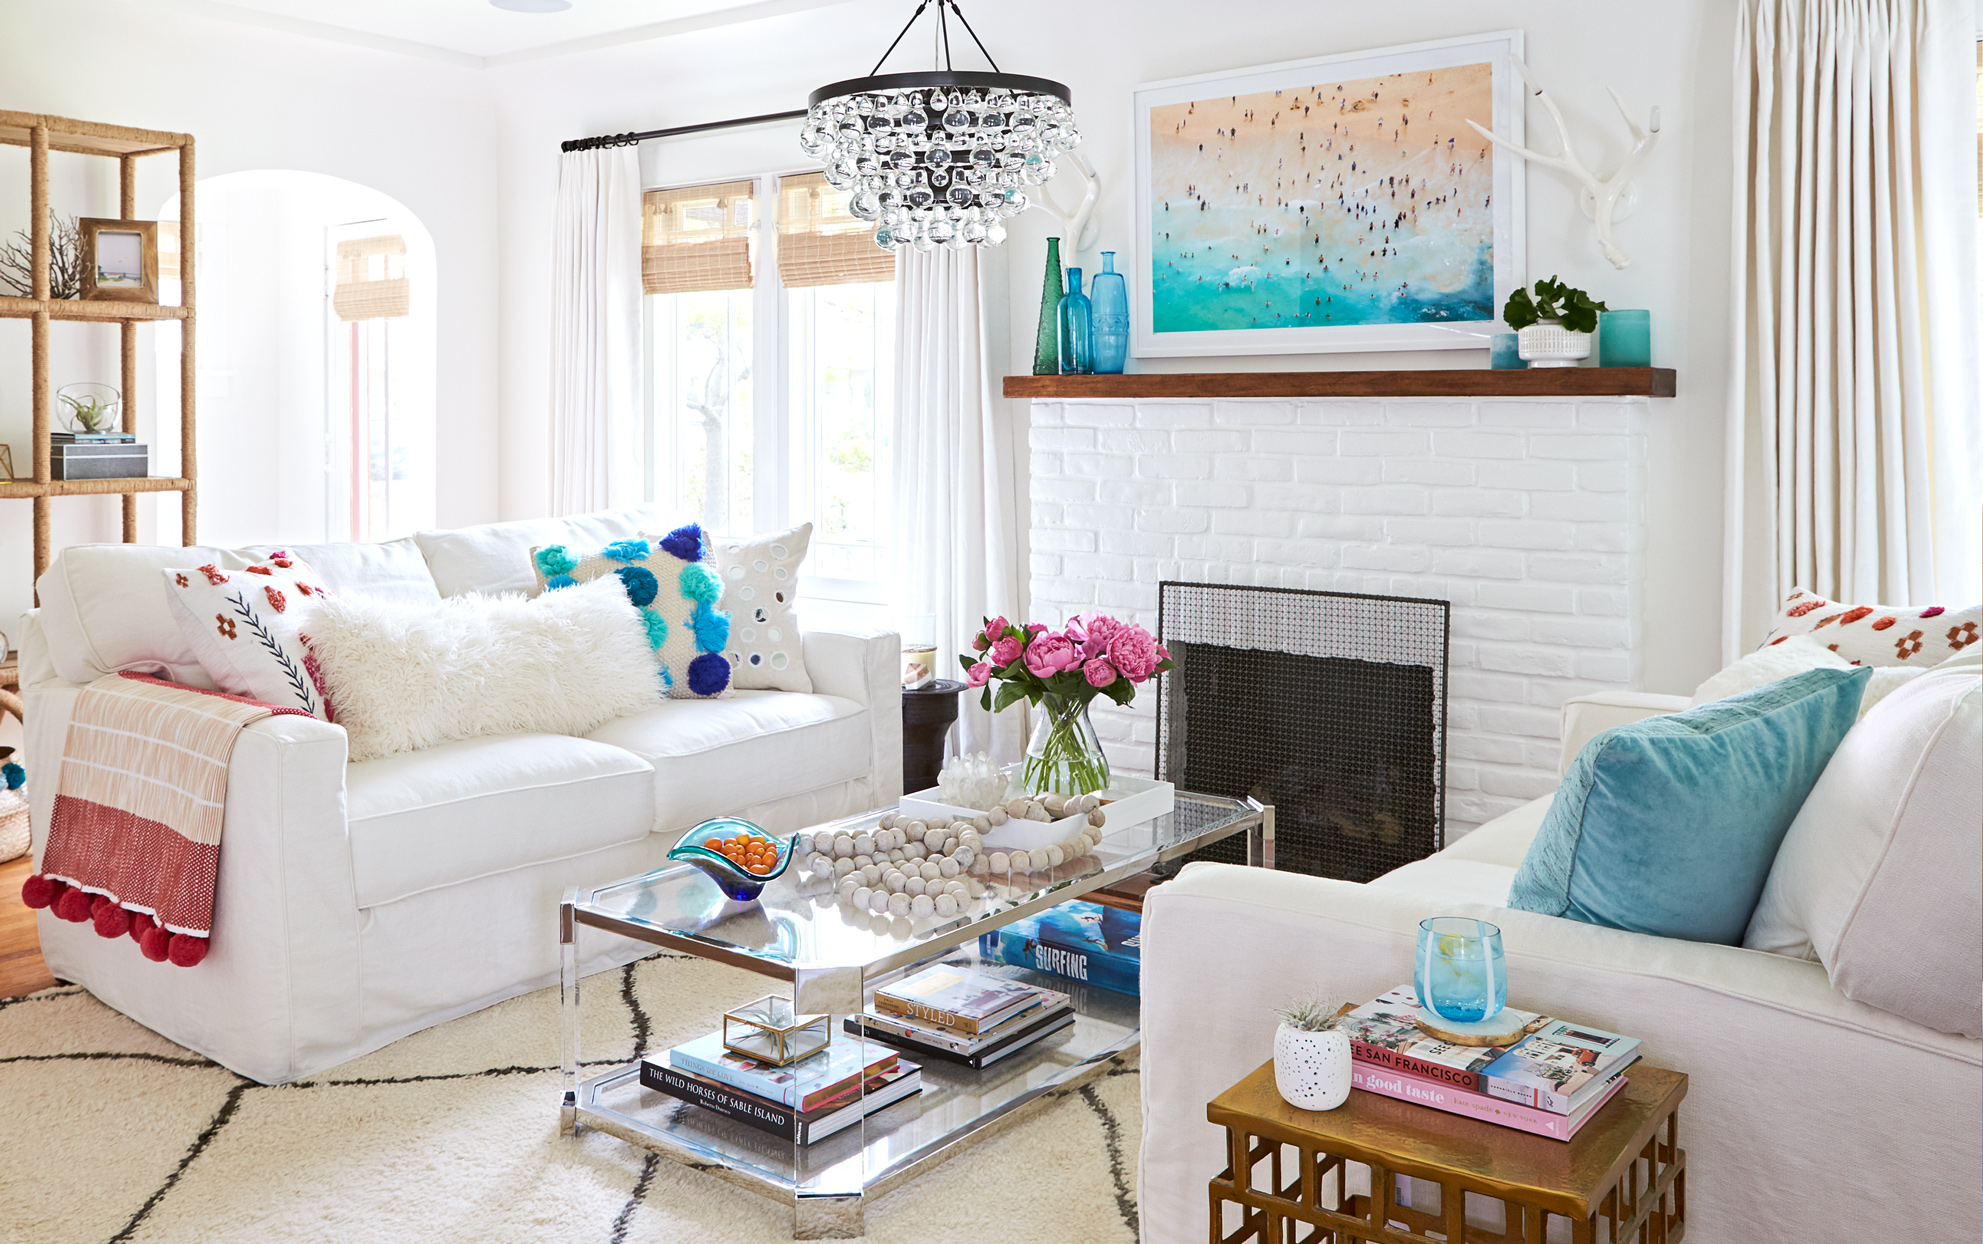 A coastal-style living room with bright white furniture and turquoise accents.